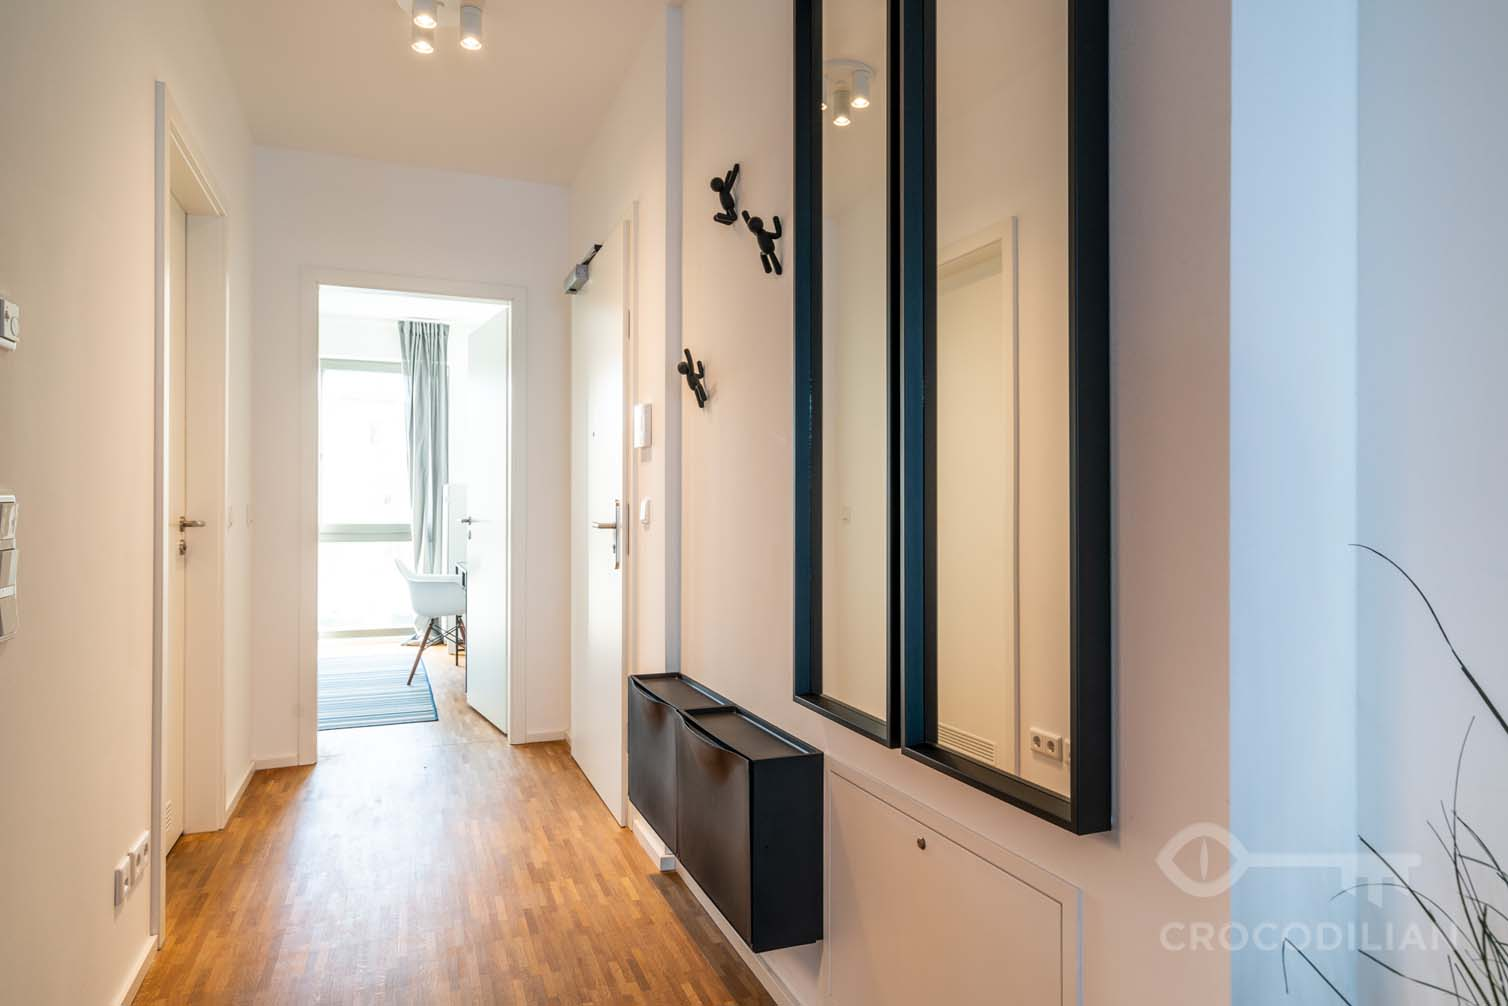 Luxurious 2-Room Apartment with Balcony in Mitte, bordering Kreuzberg